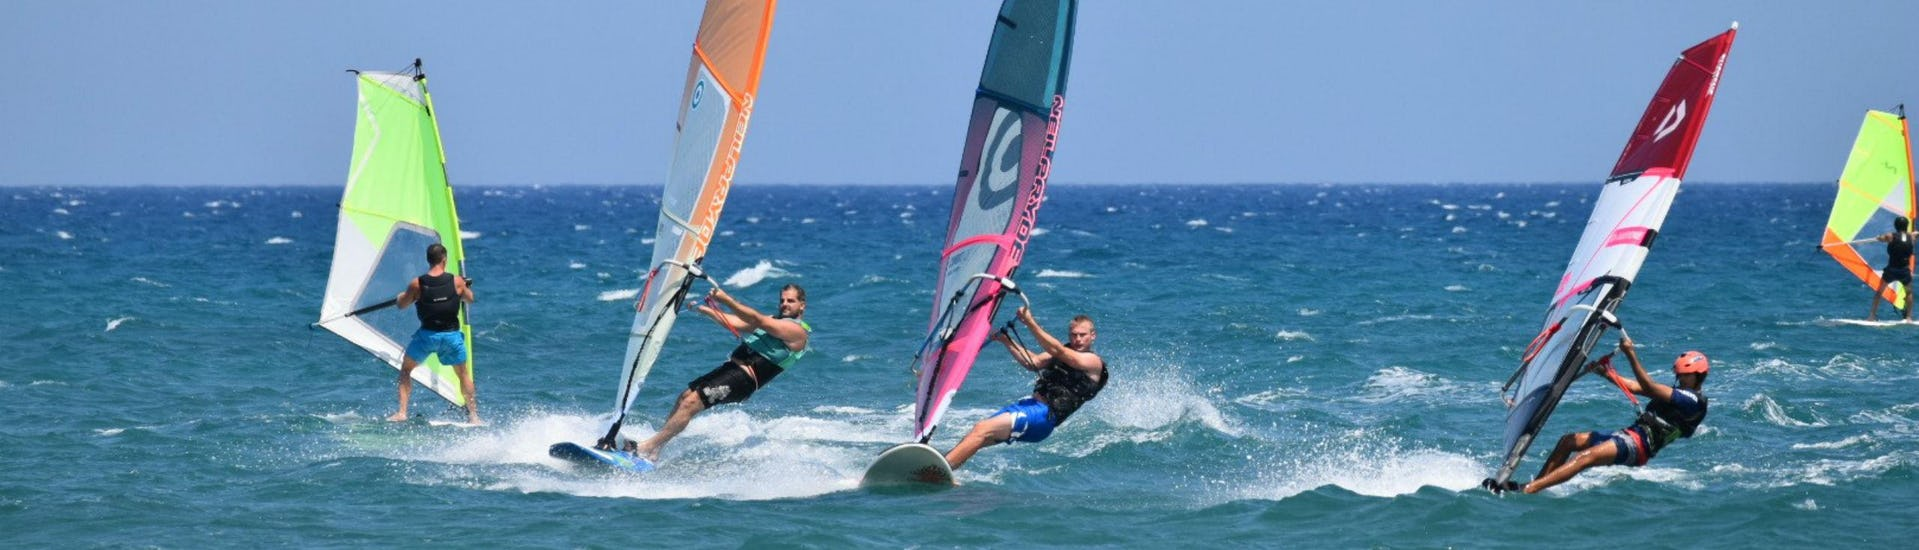 Windsurfing Lessons for Kids & Adults - Beginners